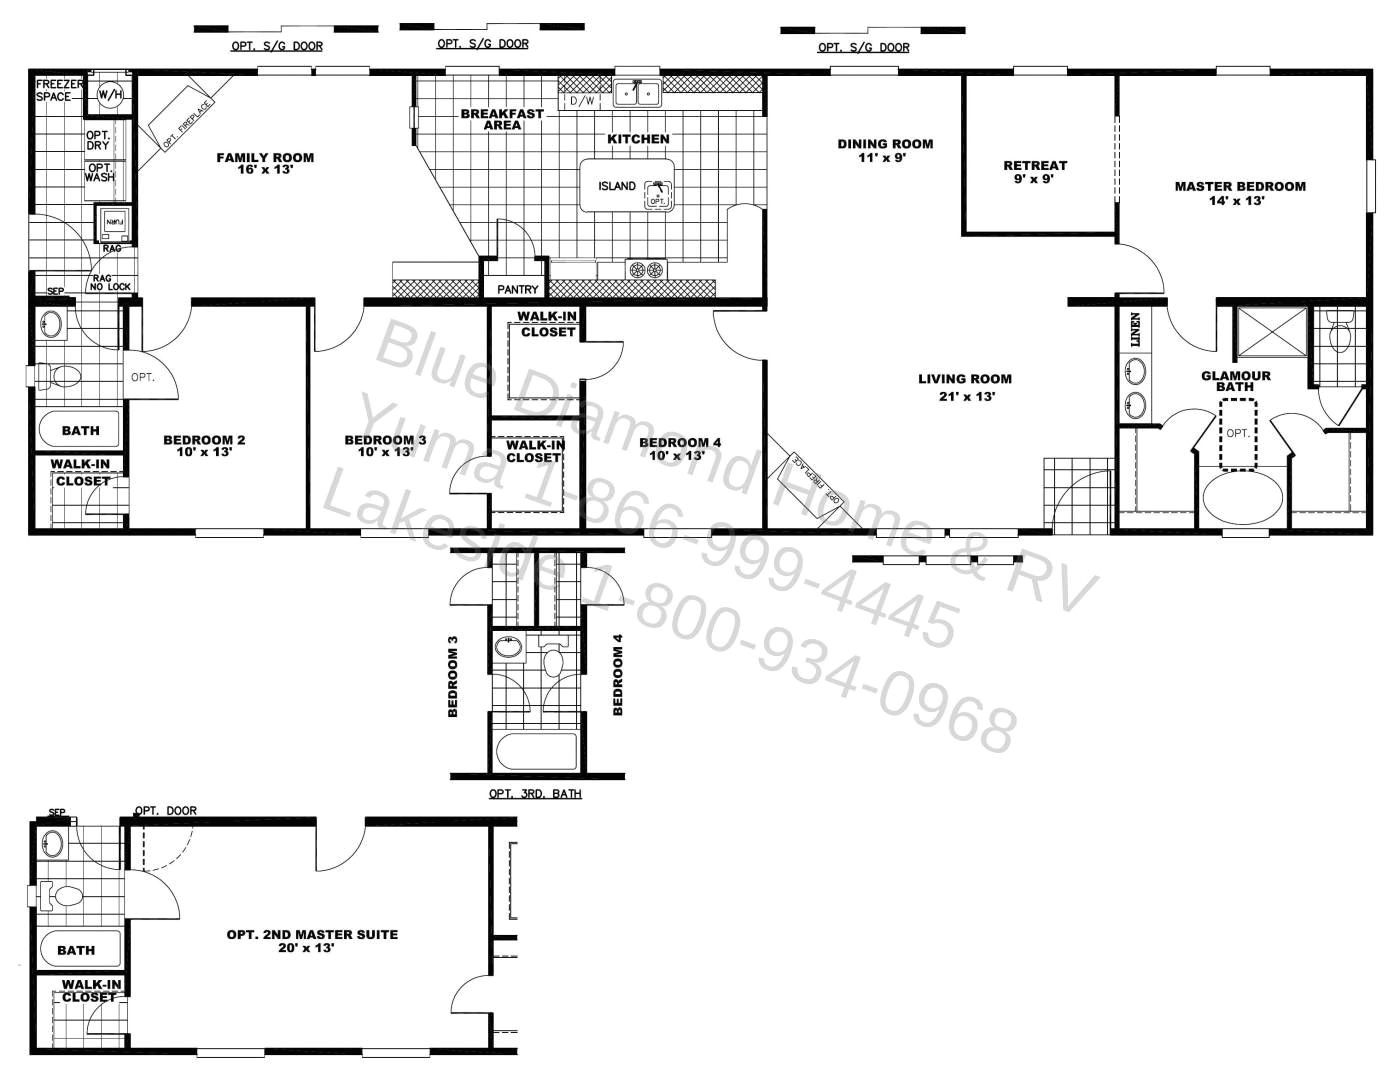 1 level house plans with 2 master suites